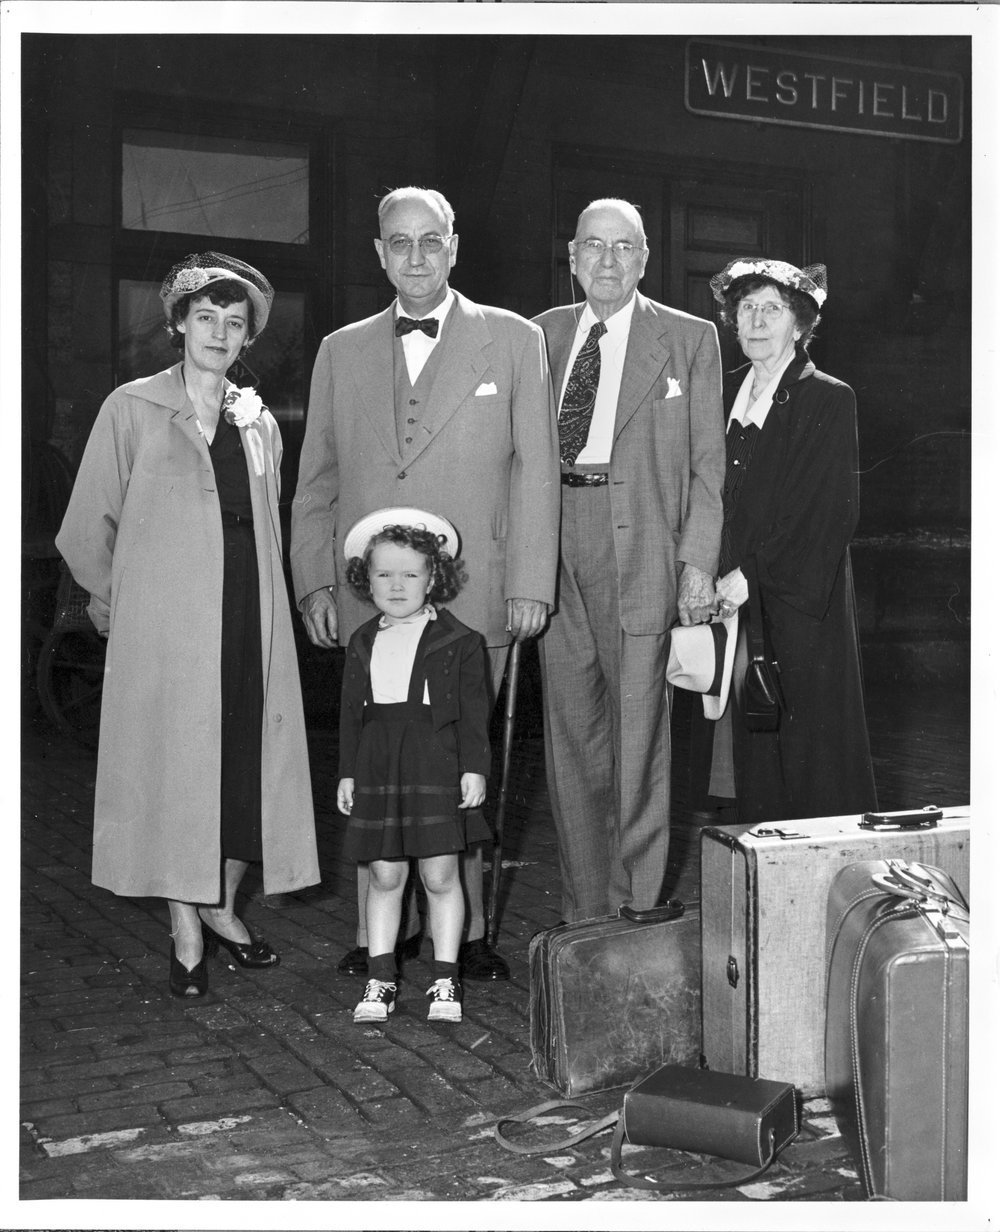 Karl Menninger, M.D. - Dr. Karl is shown with Rosemary, Jean, Dr. C.F. and Pearl arriving for the Chautaqua.  This photo was probably taken in 1951 when Rosemary was 3.